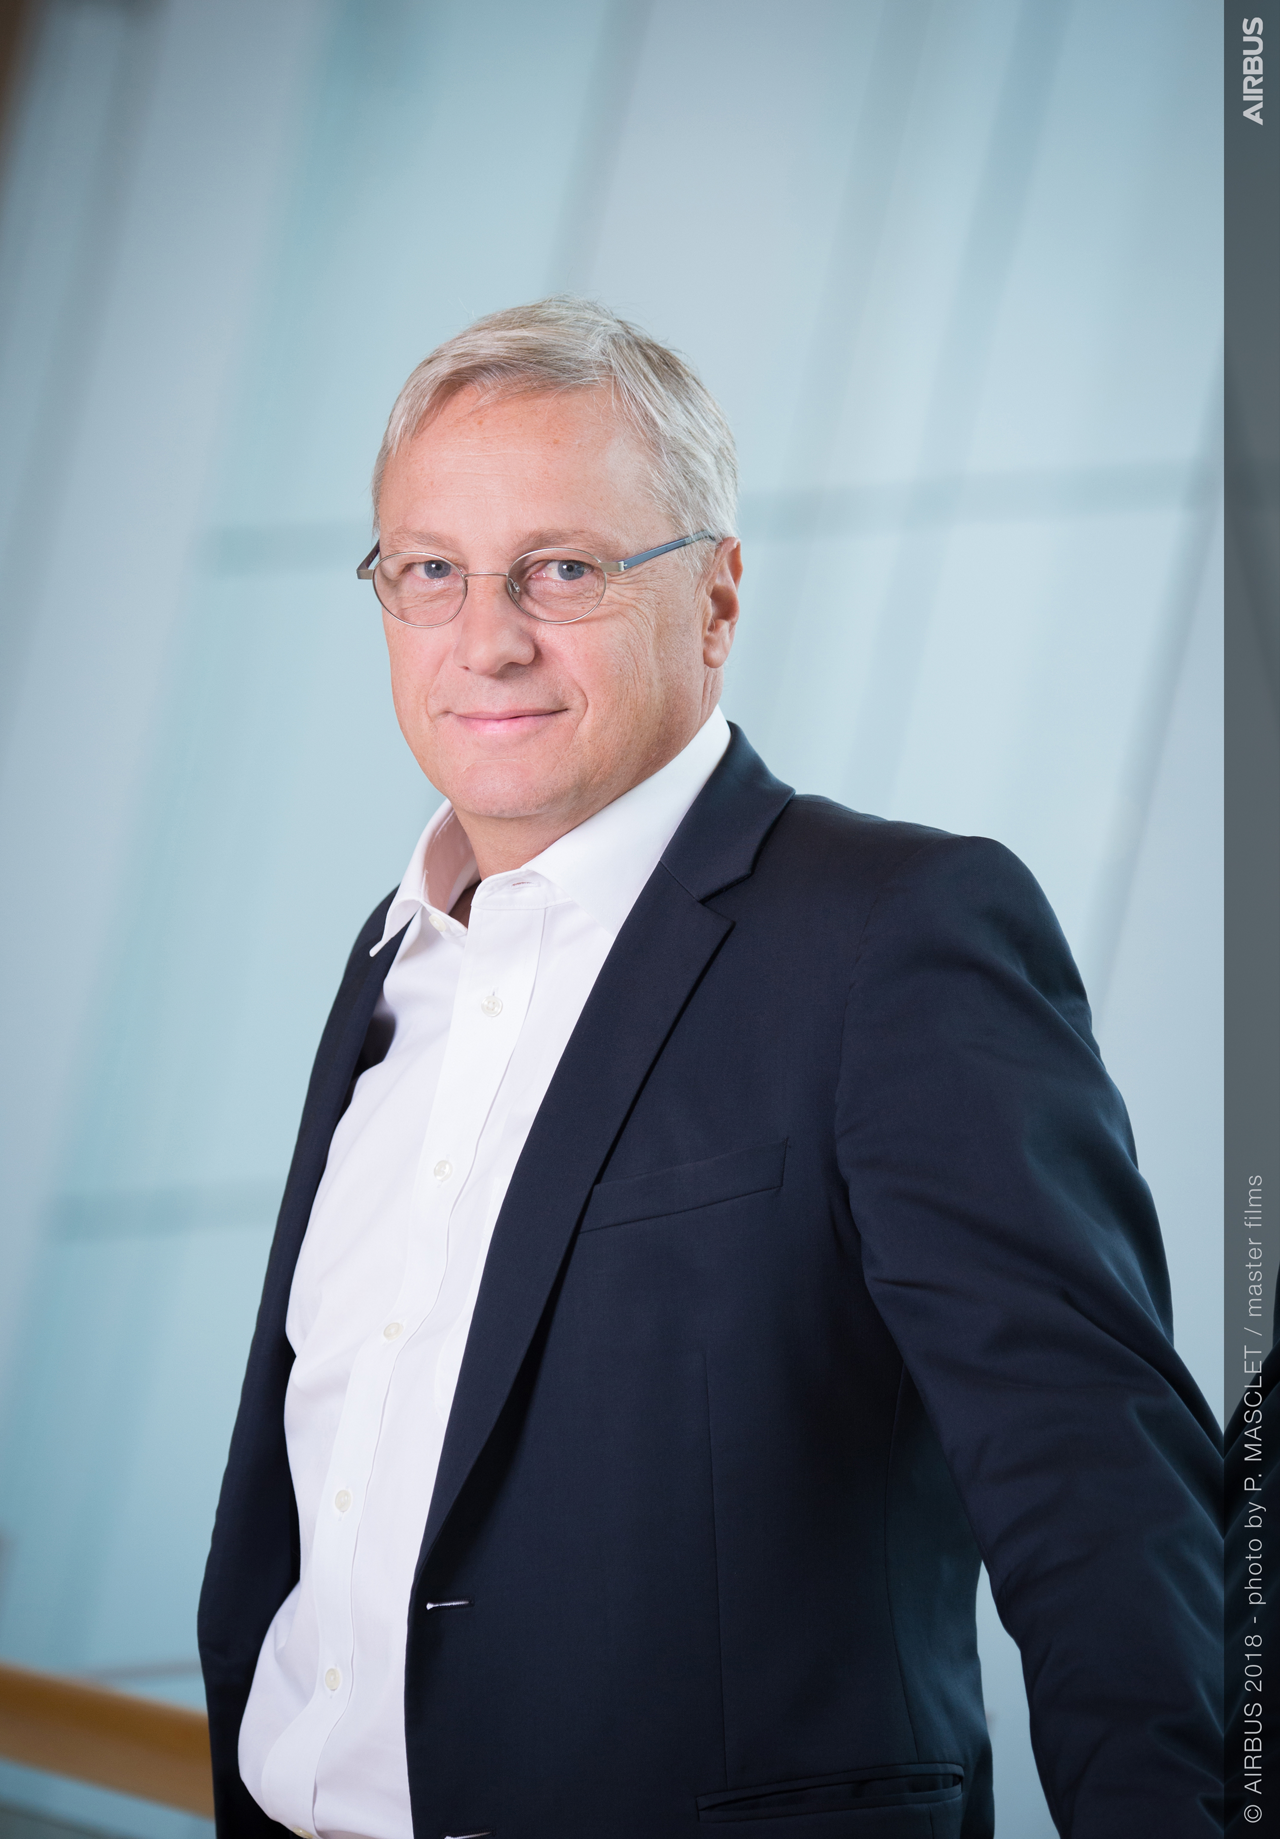 Christian Scherer was appointed Airbus Chief Commercial Officer in September 2018.